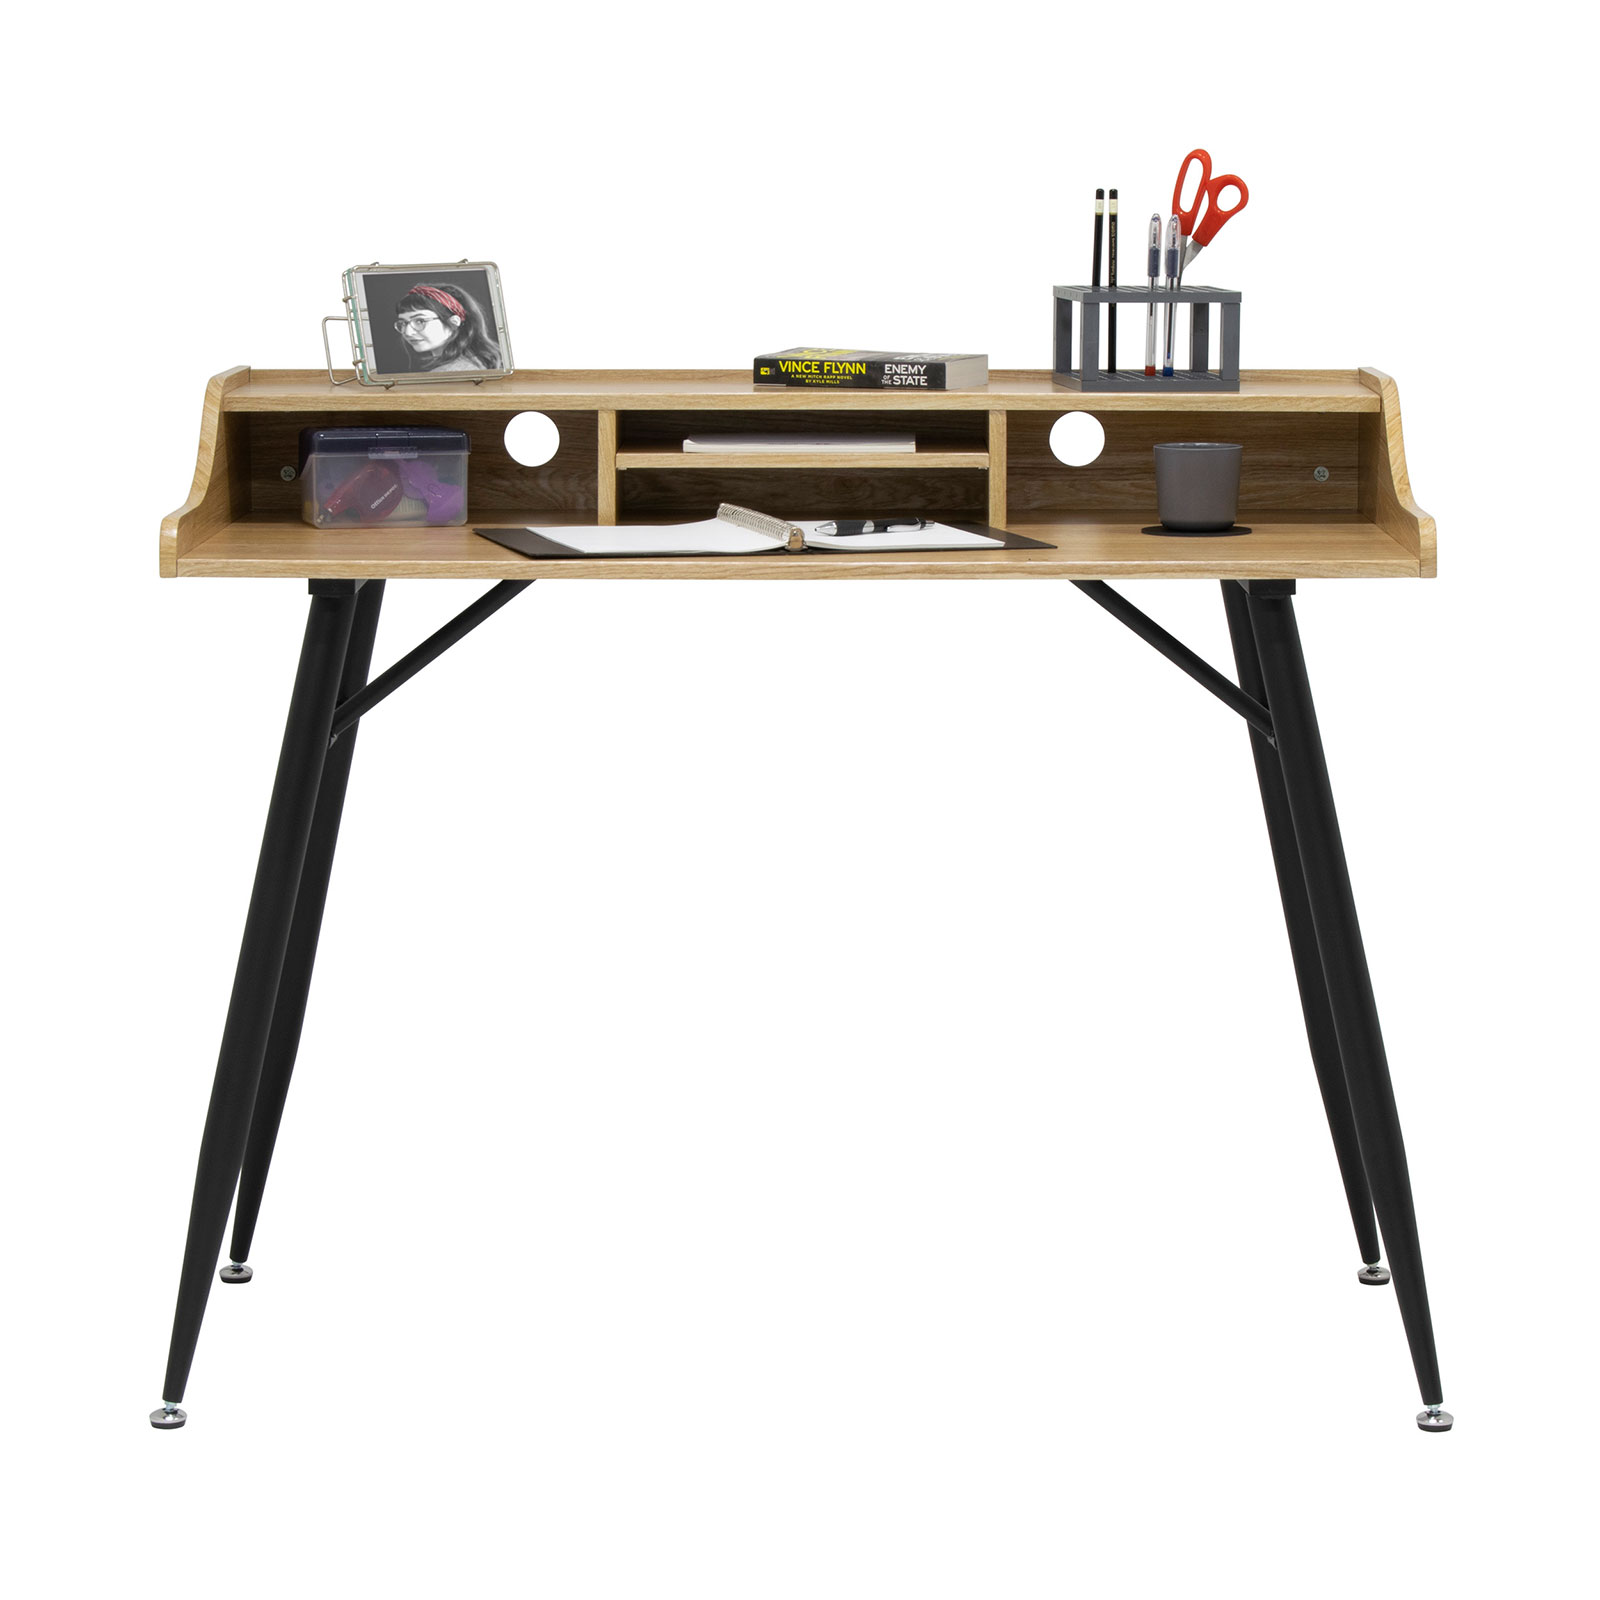 51260-Woodford-Writing-Desk-props1b